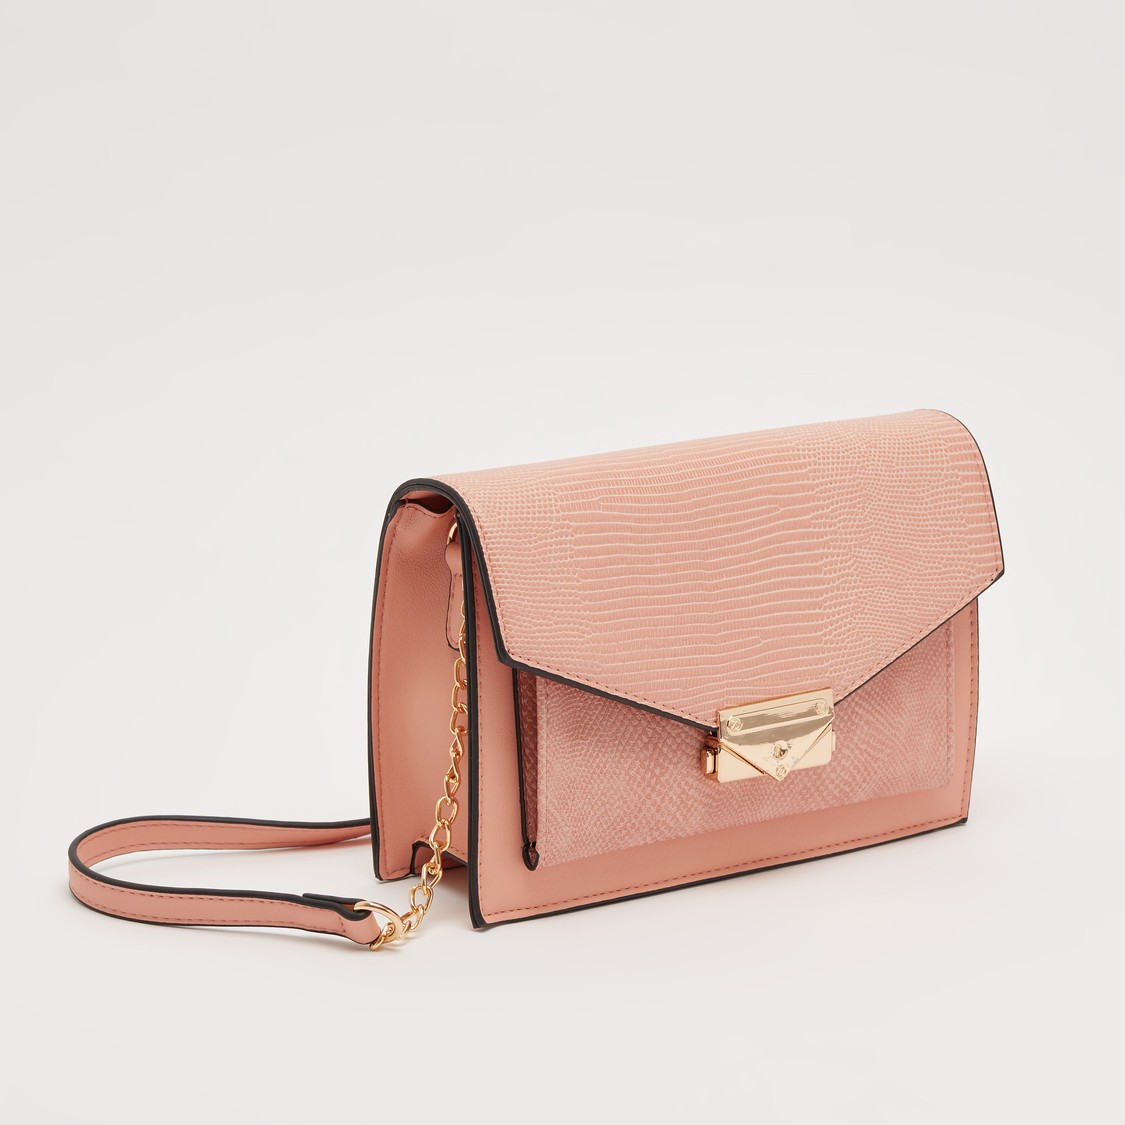 Textured Crossbody Bag with Adjustable Strap